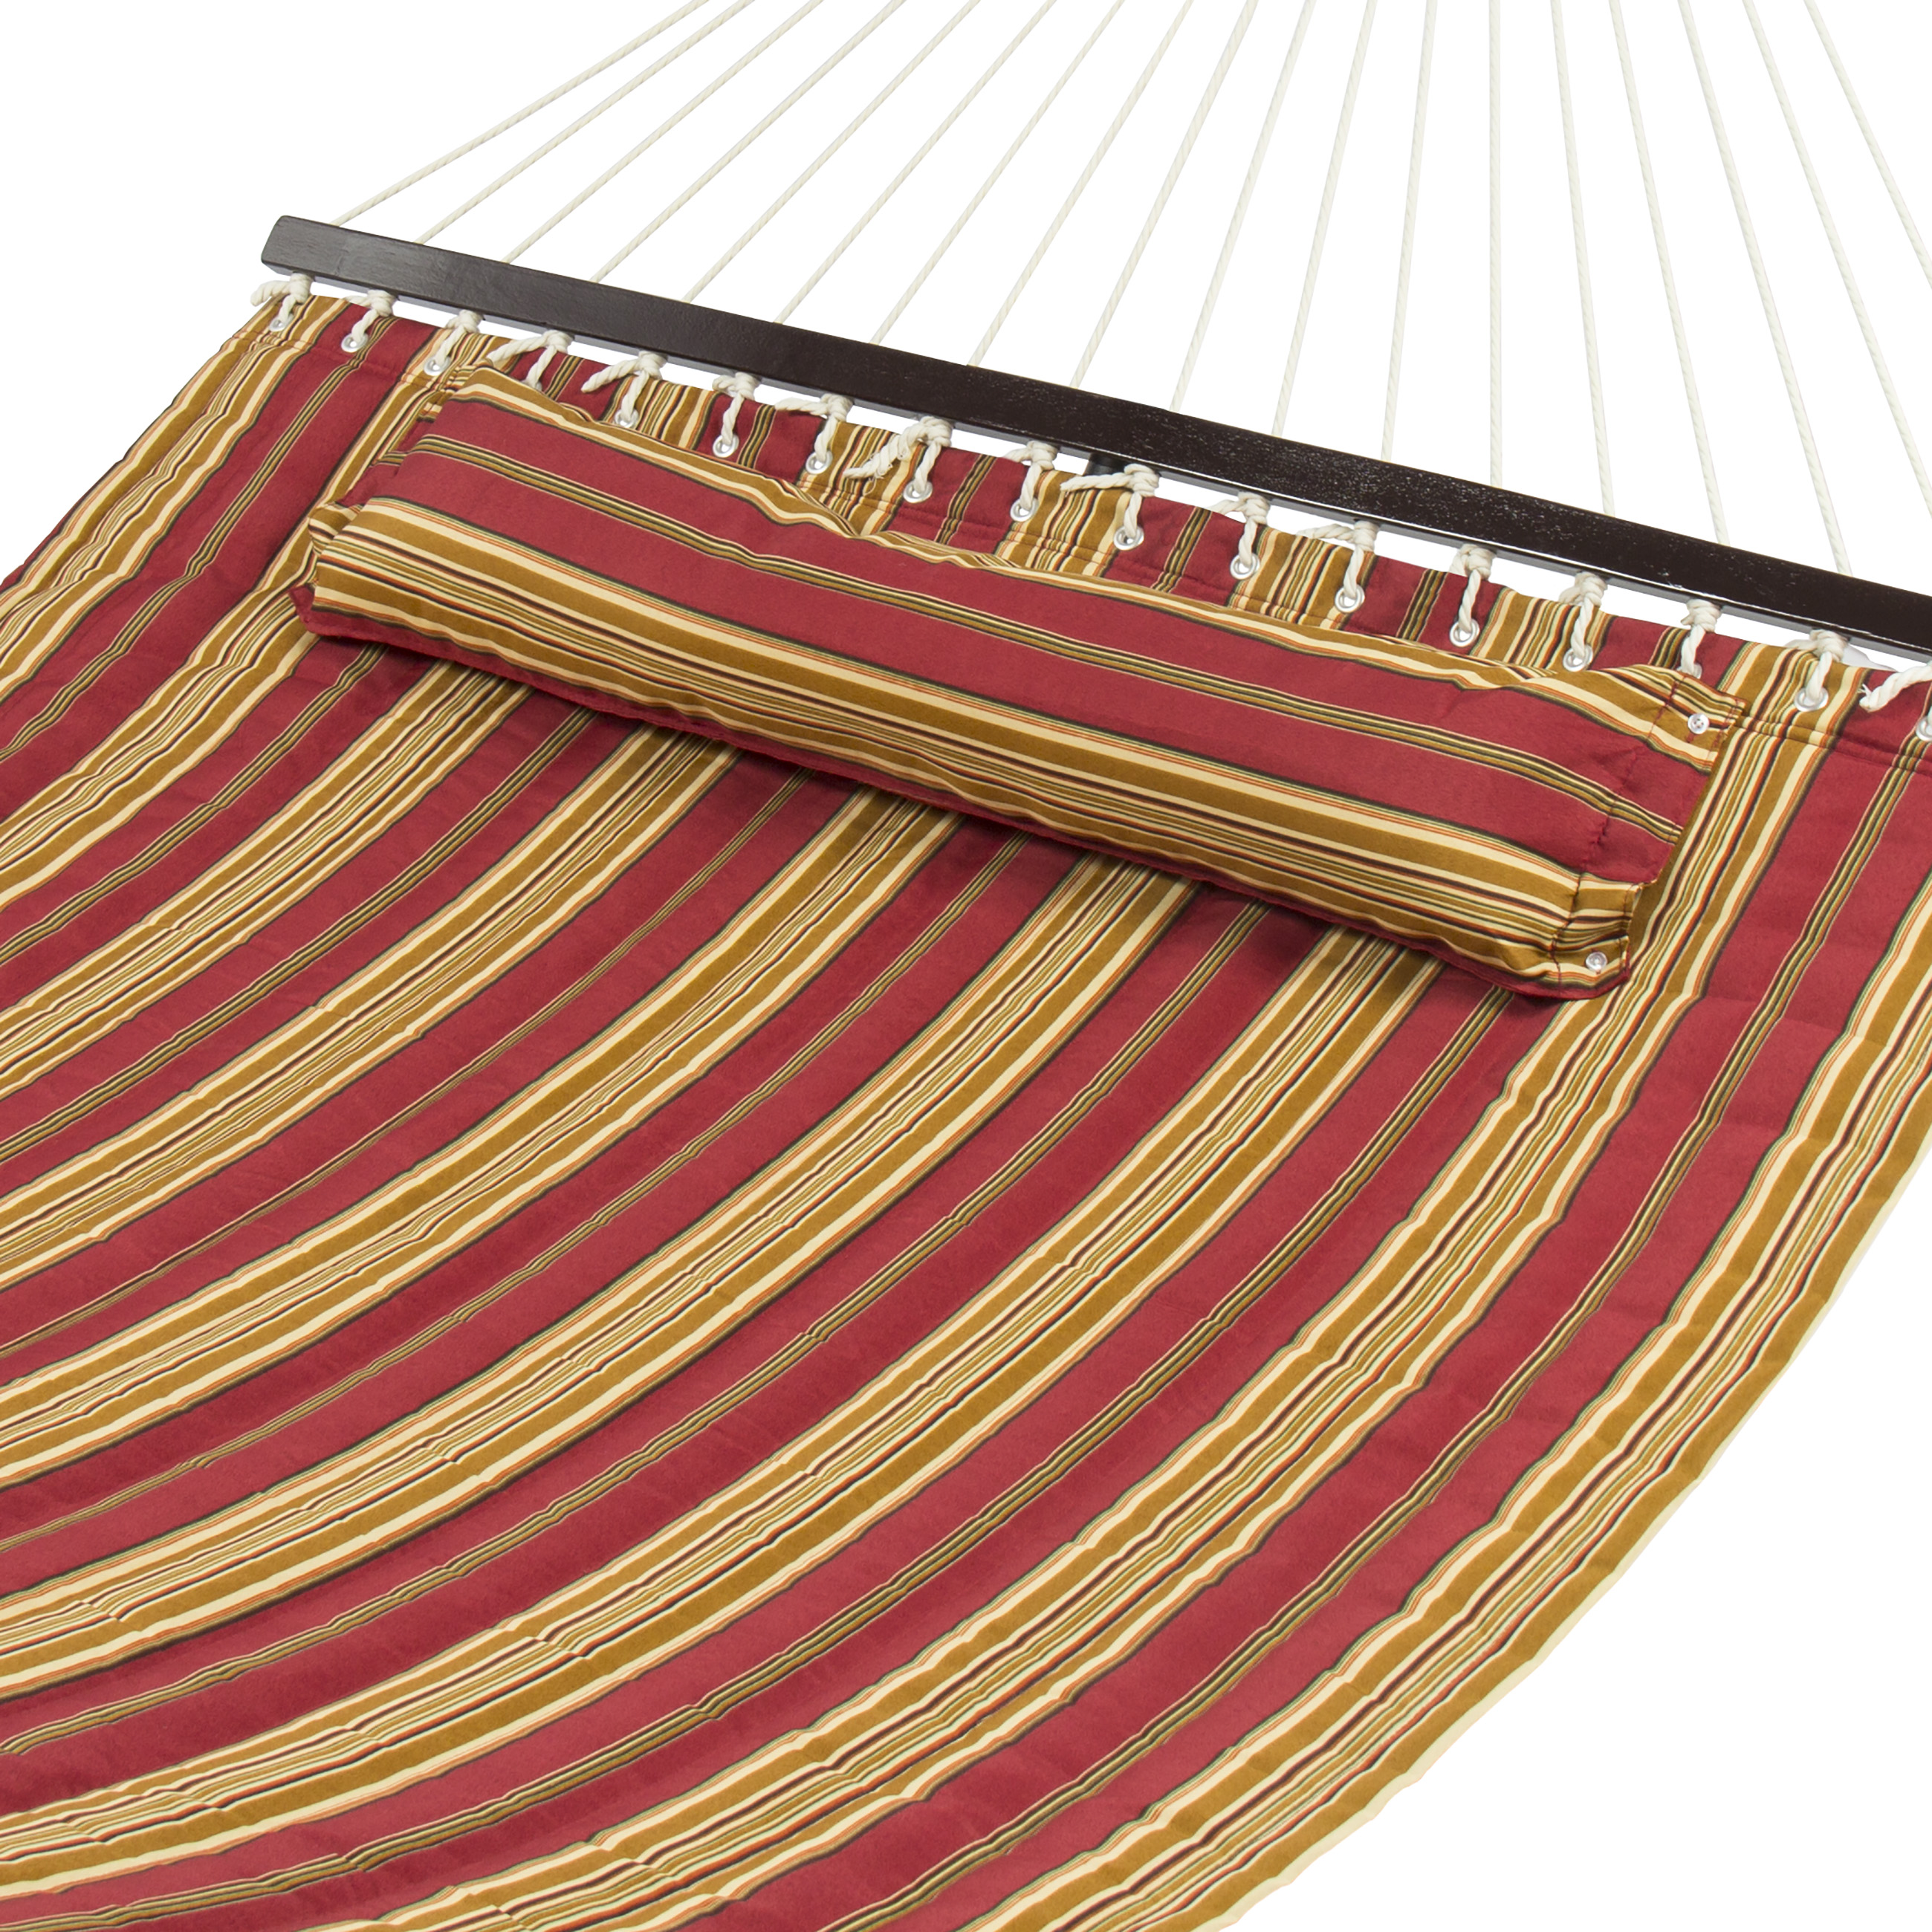 Best Choice Products Quilted Double Hammock w/ Detachable Pillow, Spreader Bar- Red/Yellow